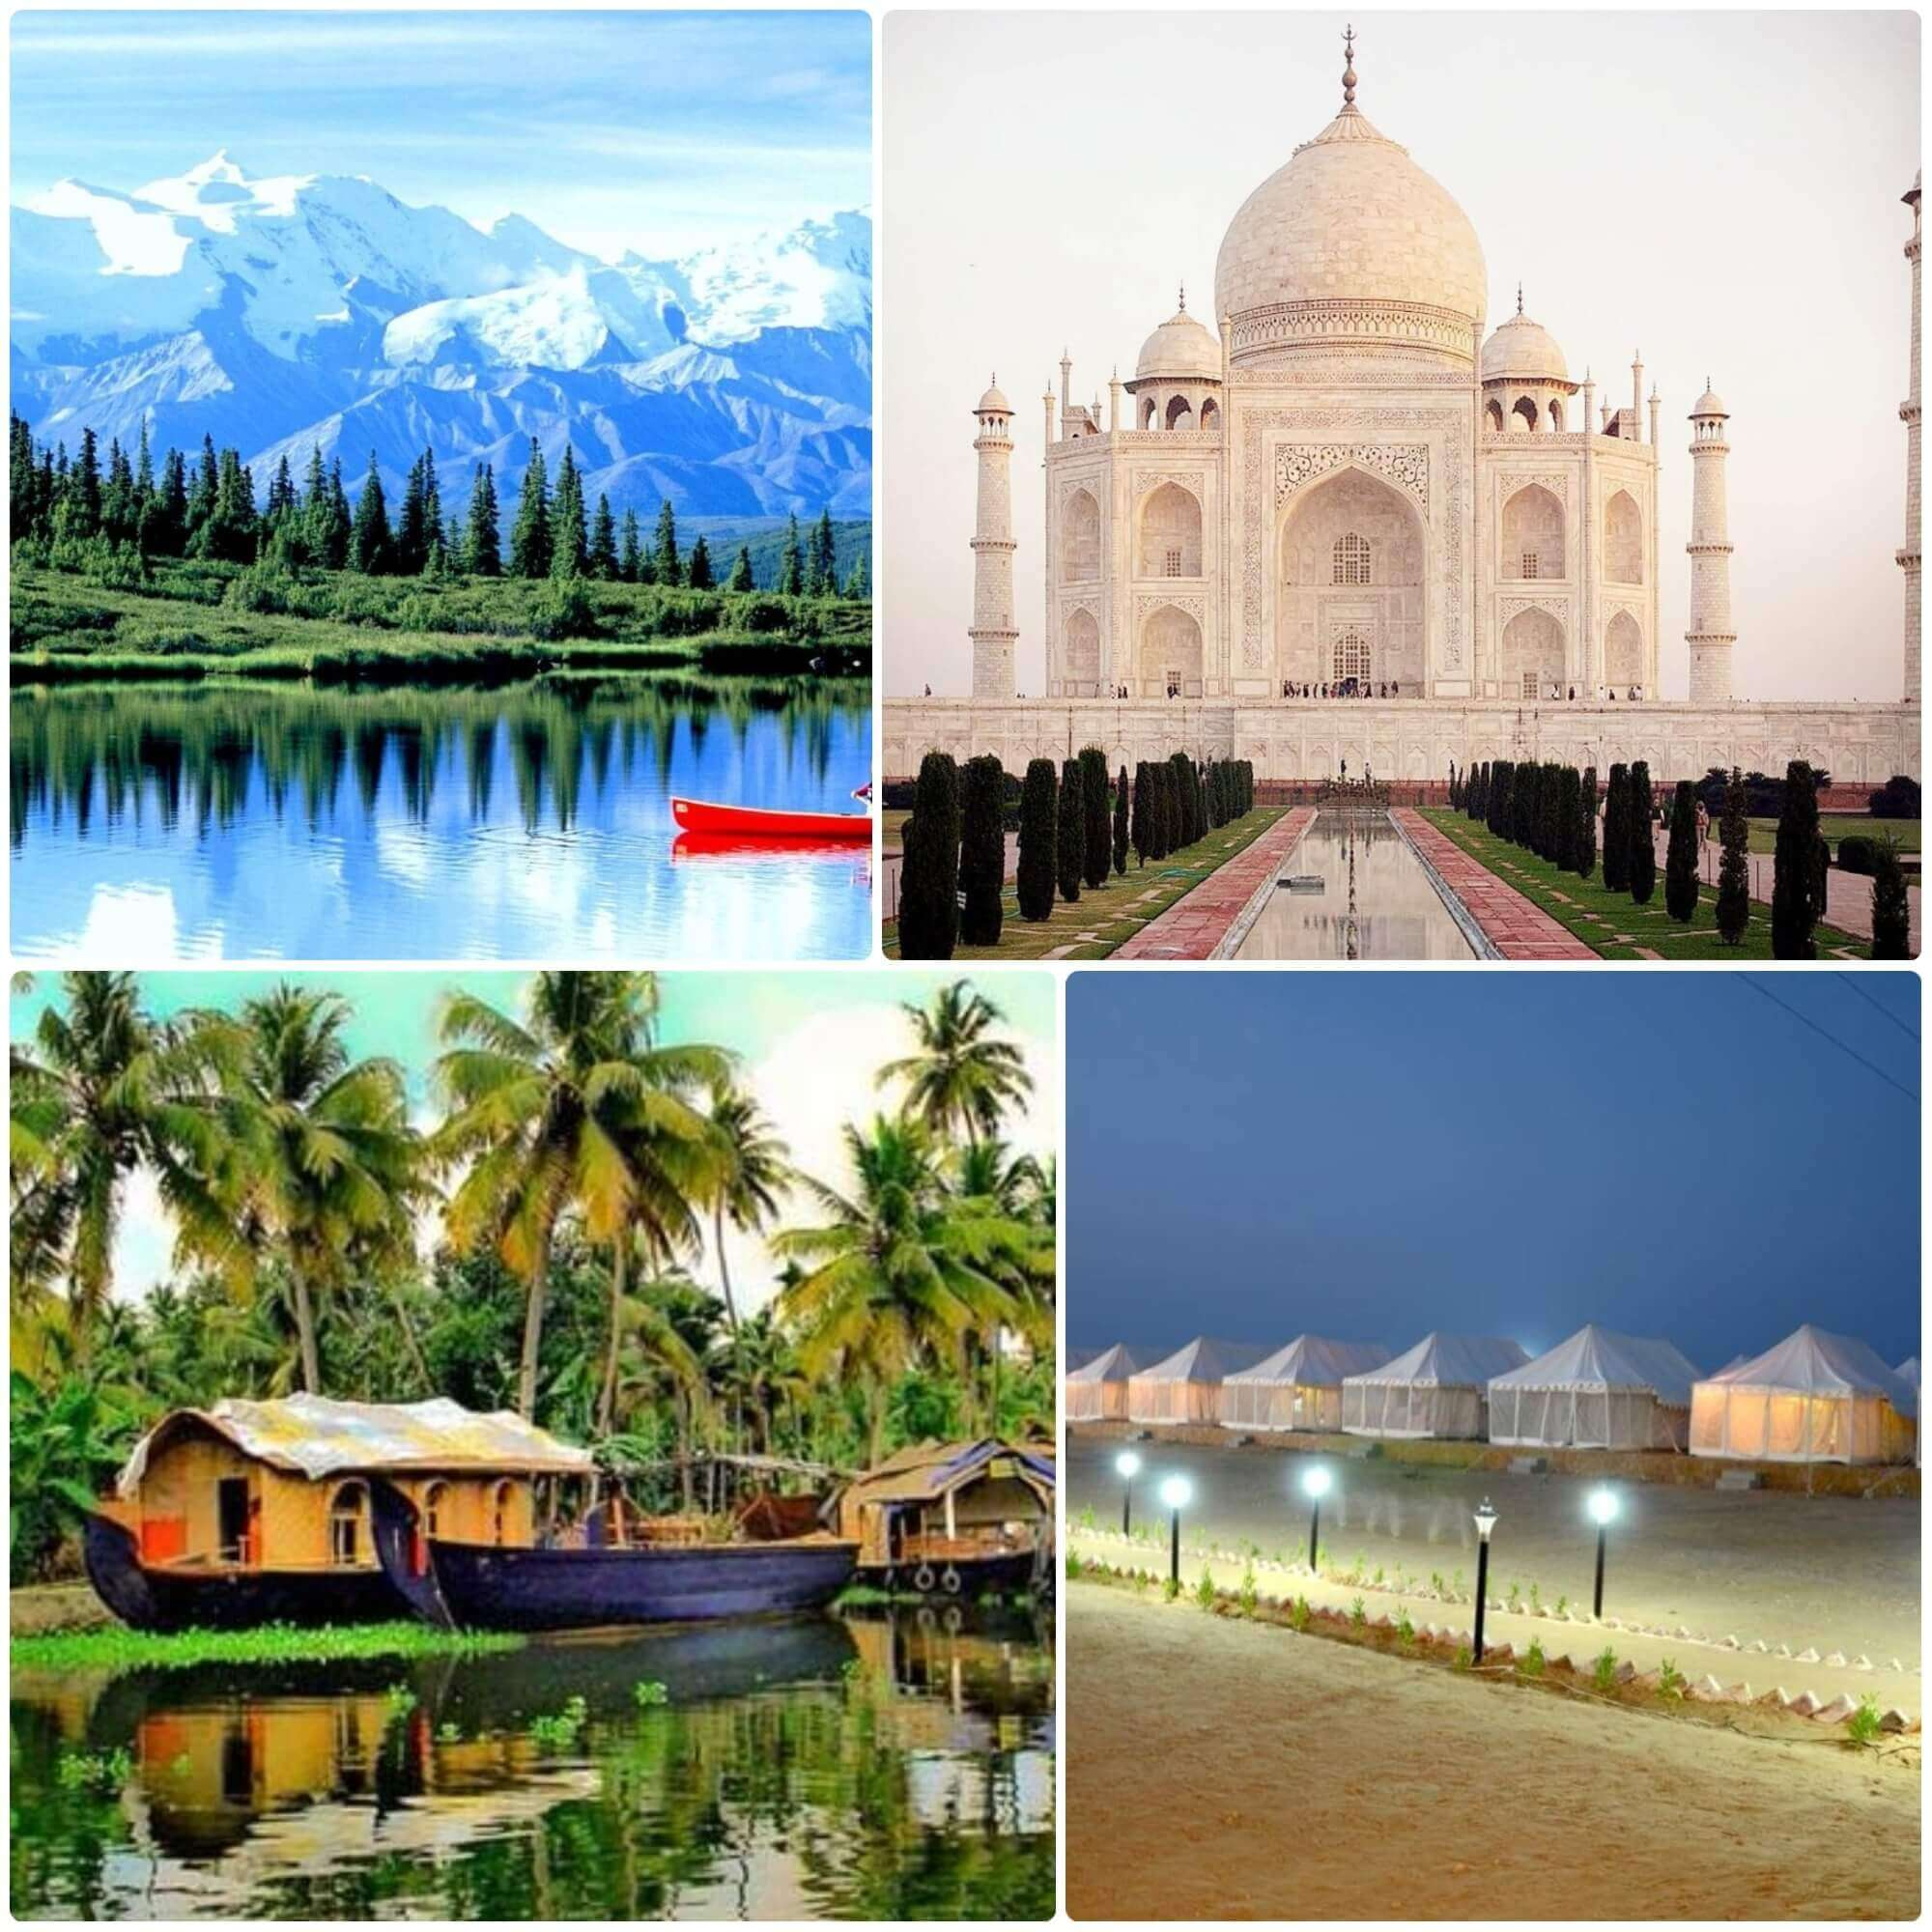 Top 8 Places To Visit In India In 2018!